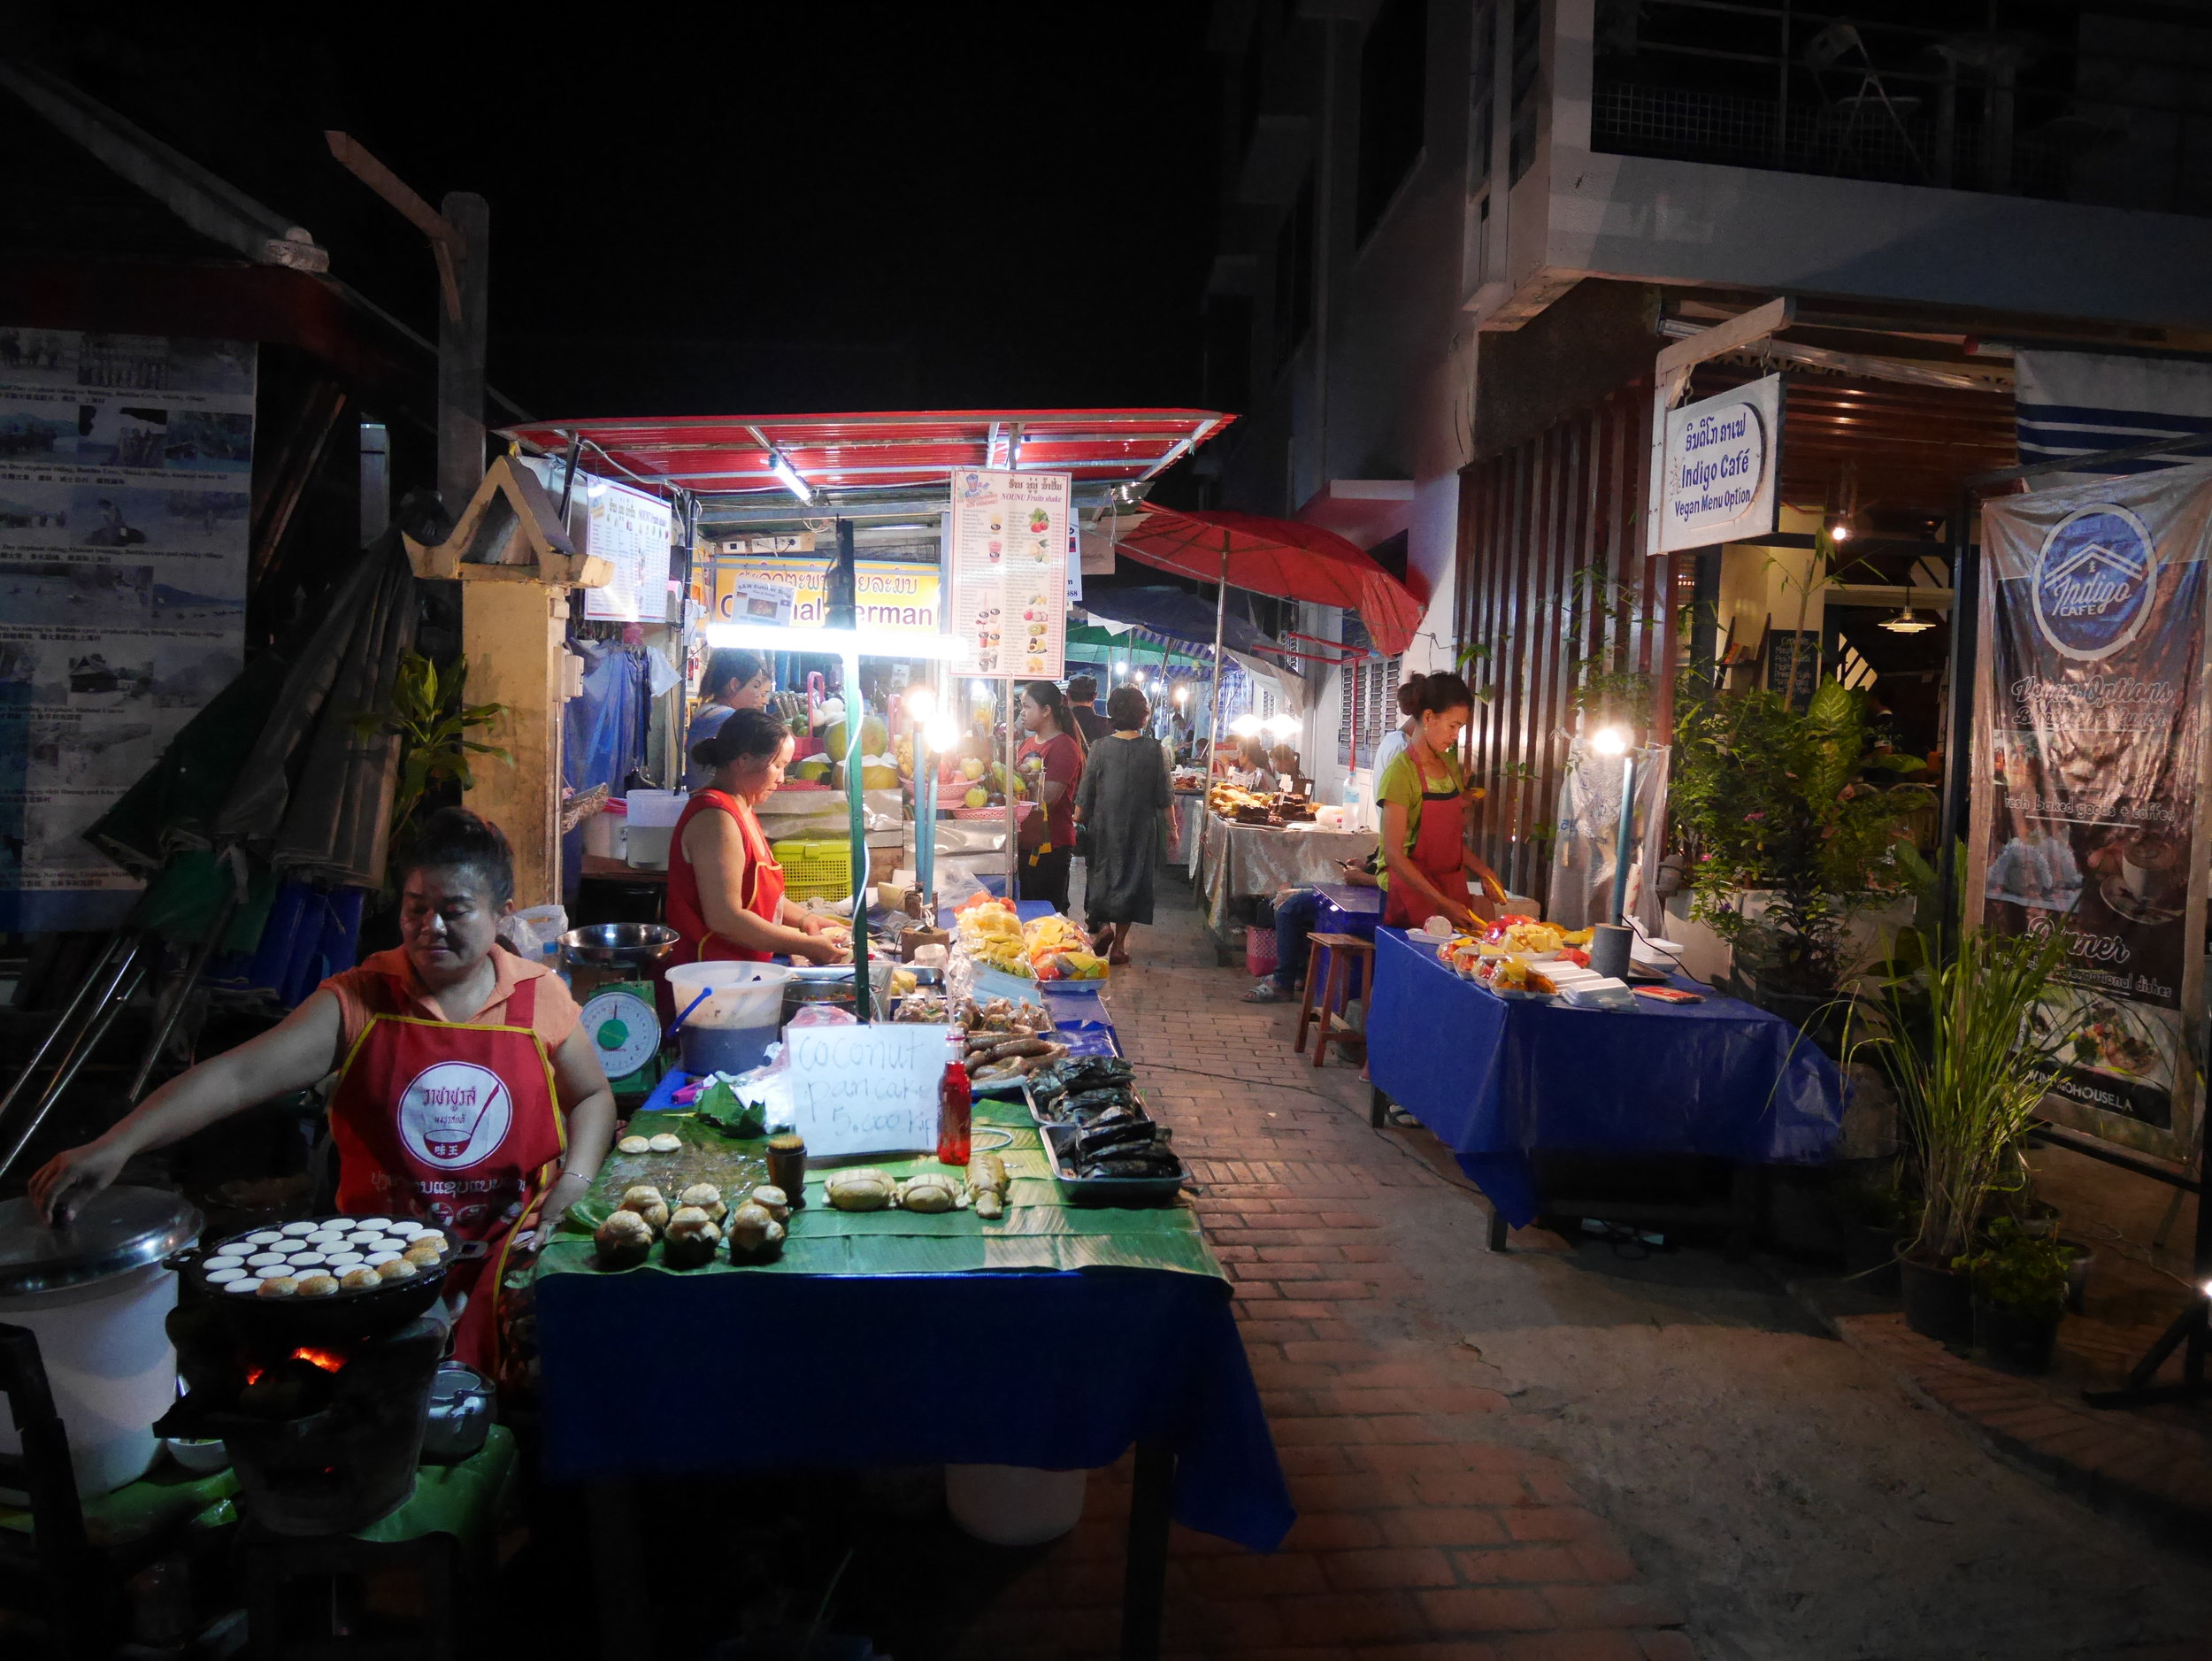 street vendors preparing food and snacks at the Night Market in Luang Prabang, Laos